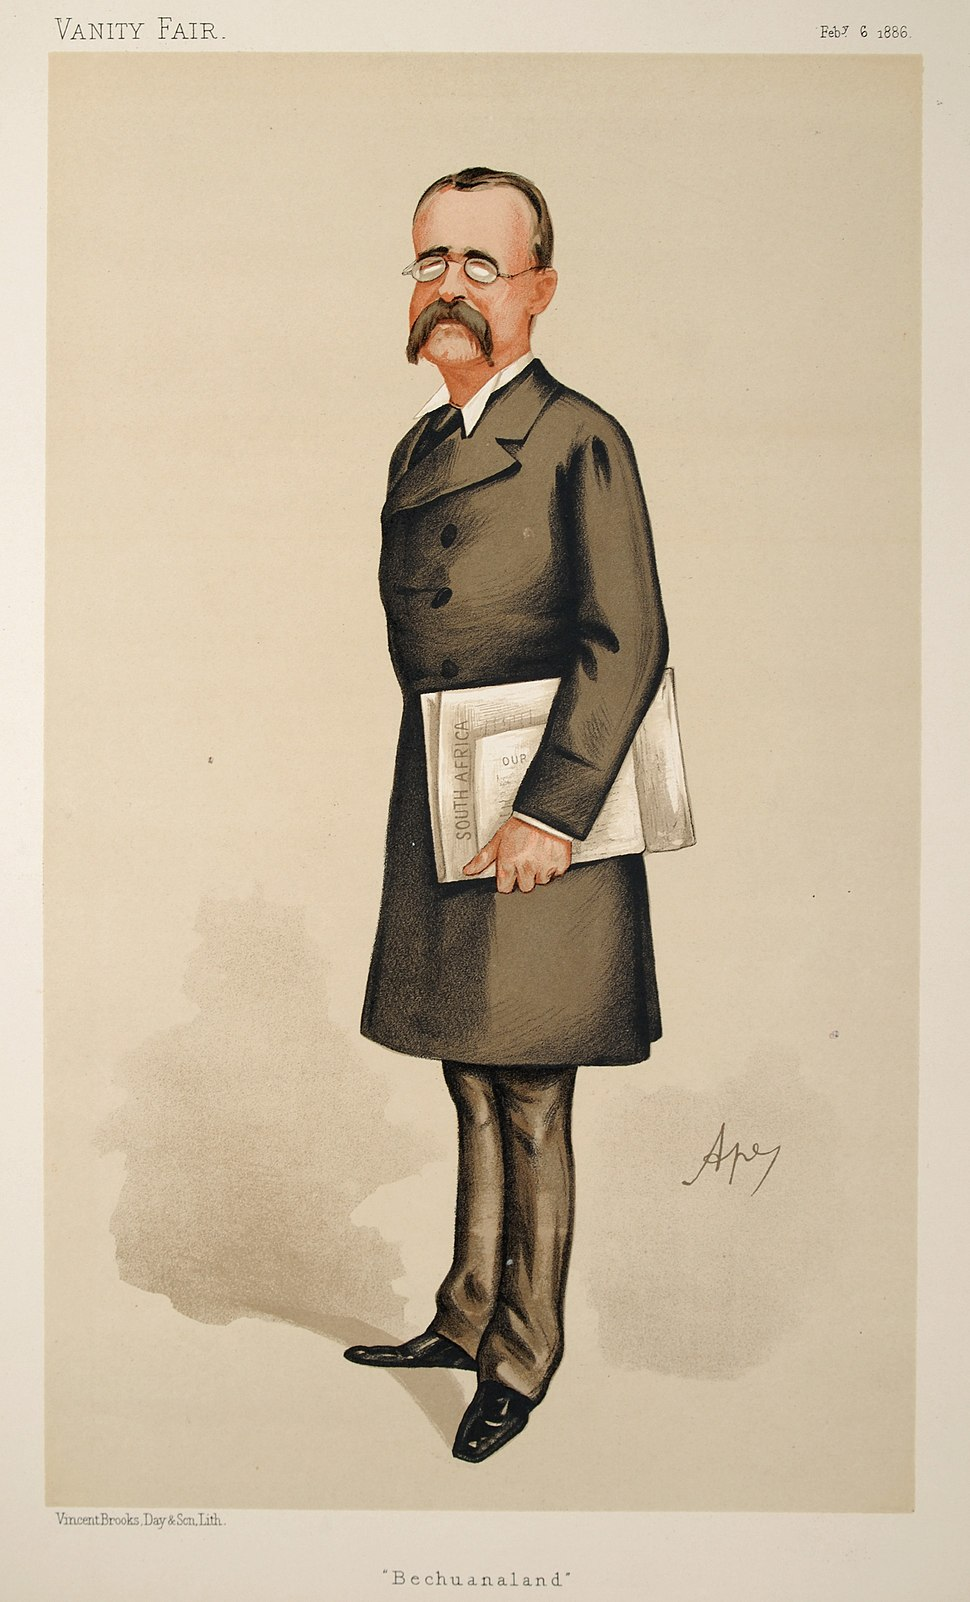 Charles Warren, Vanity Fair, 1886-02-06